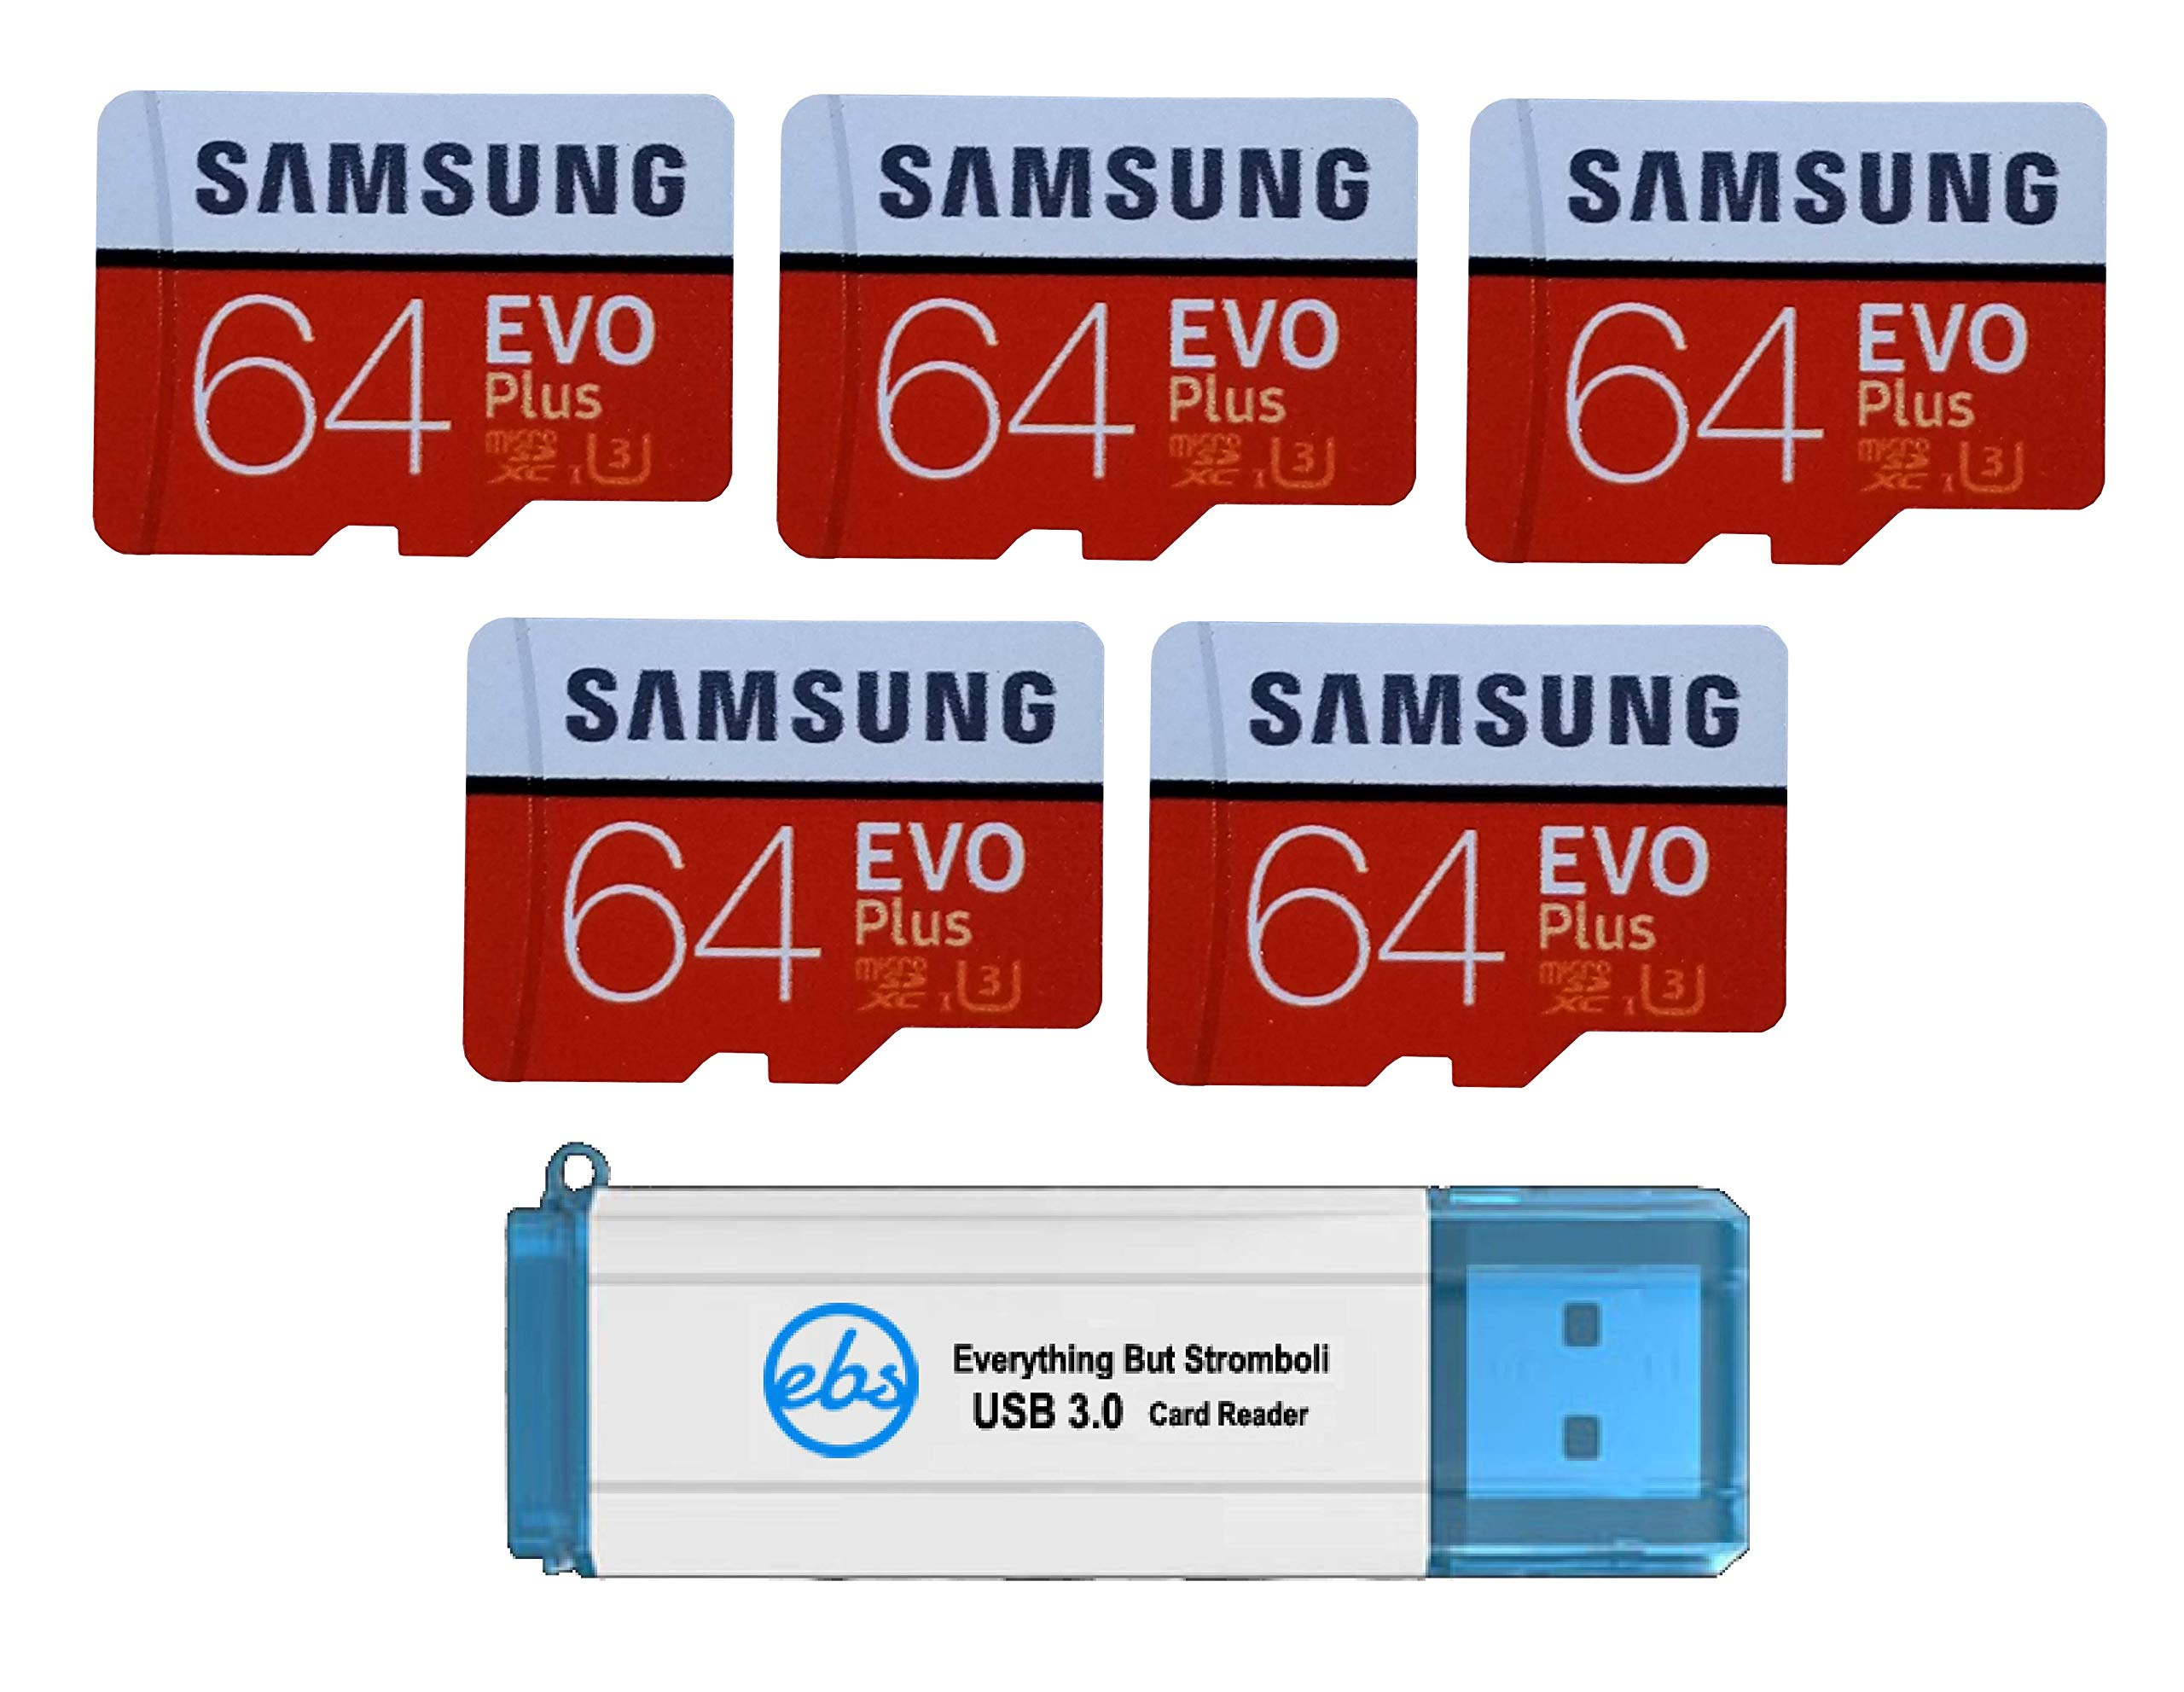 Samsung 64GB Evo Plus MicroSD Card (5 Pack Bundle) Class 10 SDXC Memory Card with Adapter (MB-MC64G) with (1) Everything But Stromboli (TM) 3.0 Reader with SD & Micro (TF) Slots by Samsung